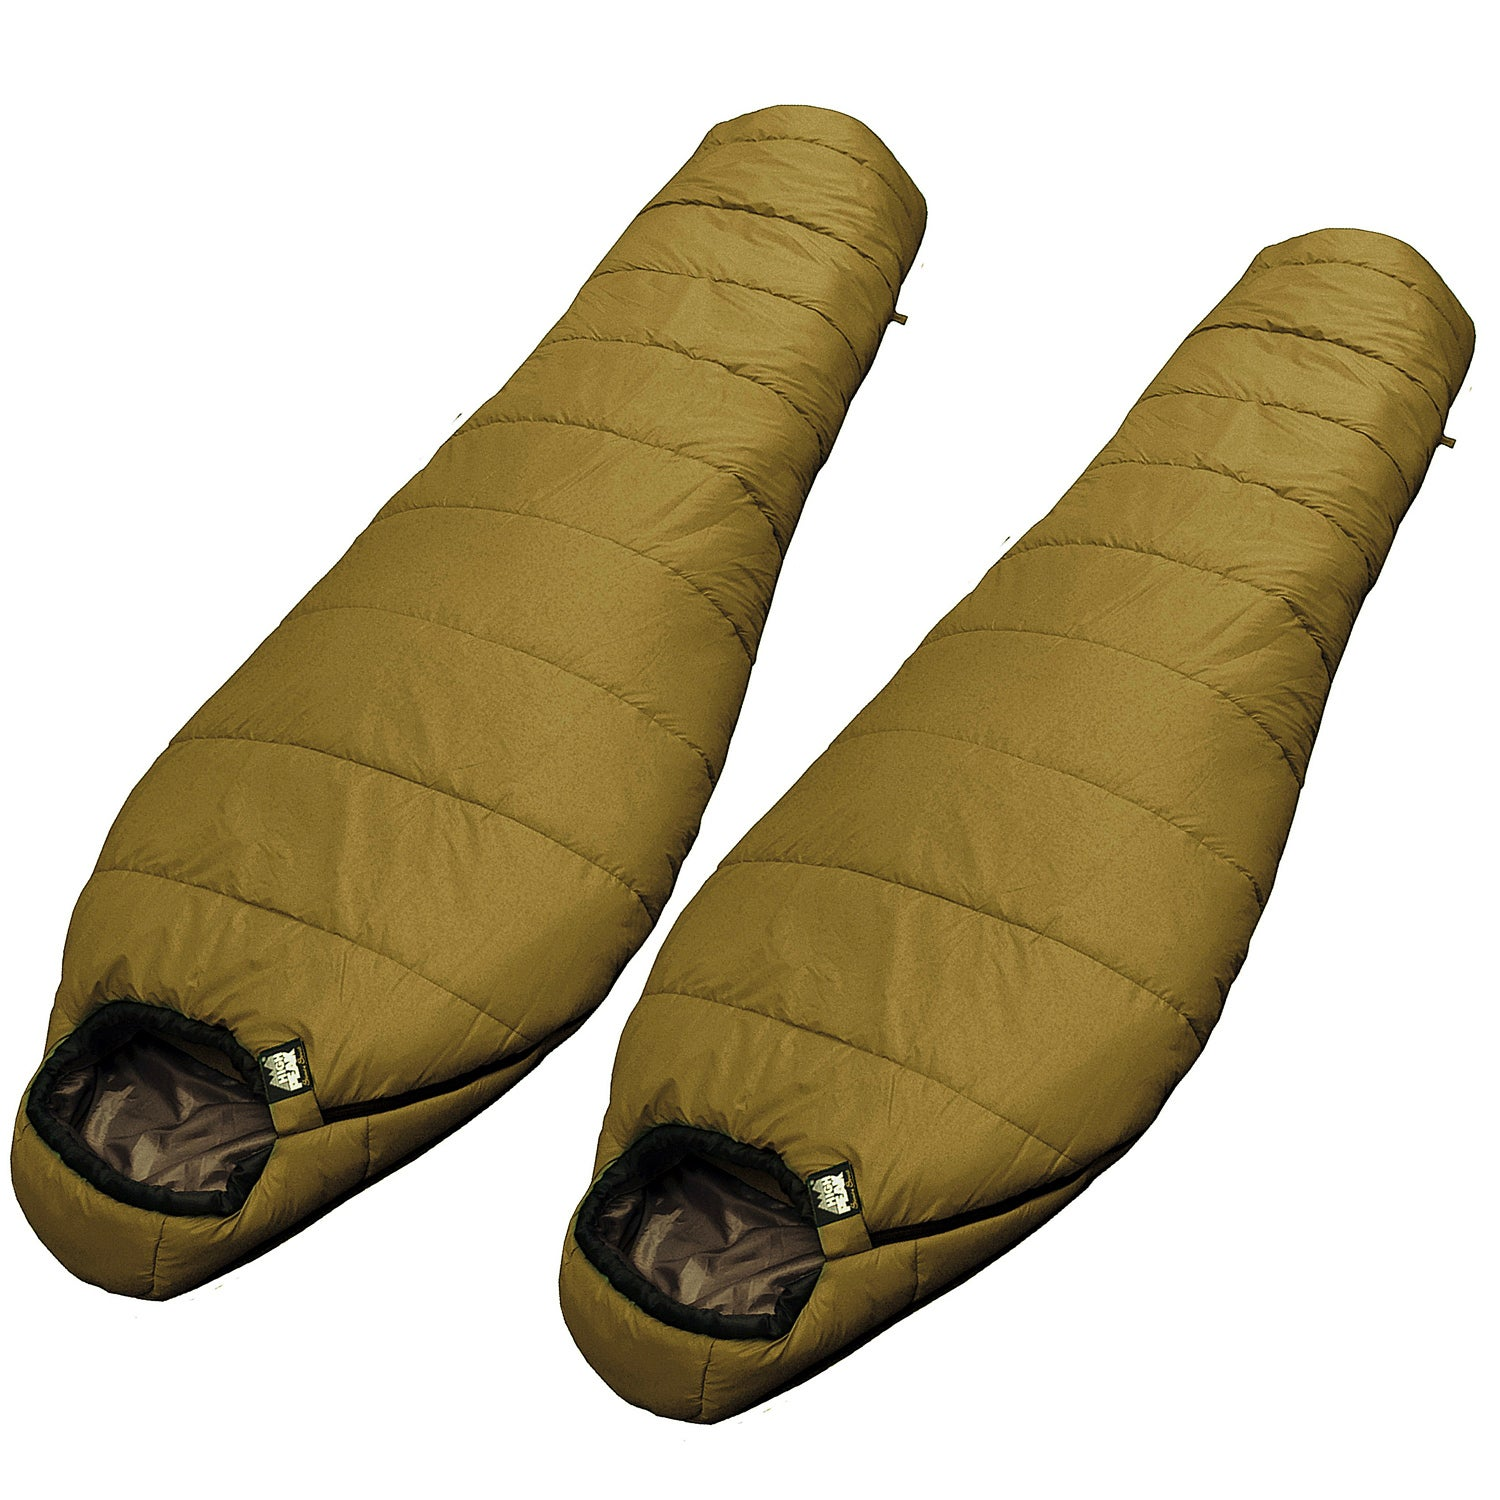 Alpinizmo by High Peak USA Summit Sleeping Bag (Set of 2) - Thumbnail 0